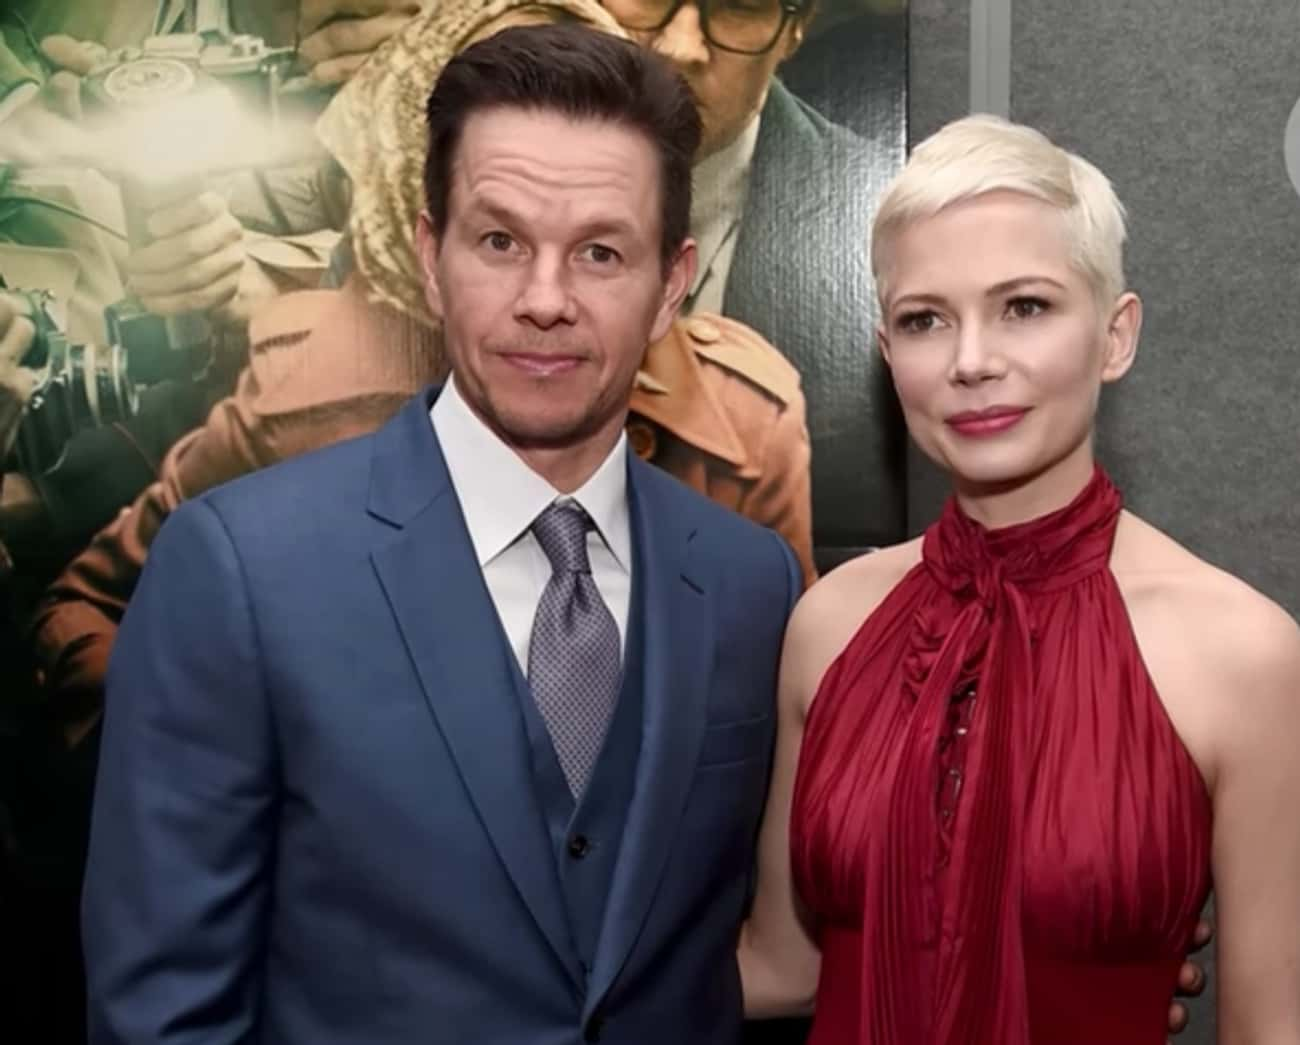 Michelle Williams Was Paid Less Than One Percent Of Mark Wahlberg's Wage For All The Money In The World